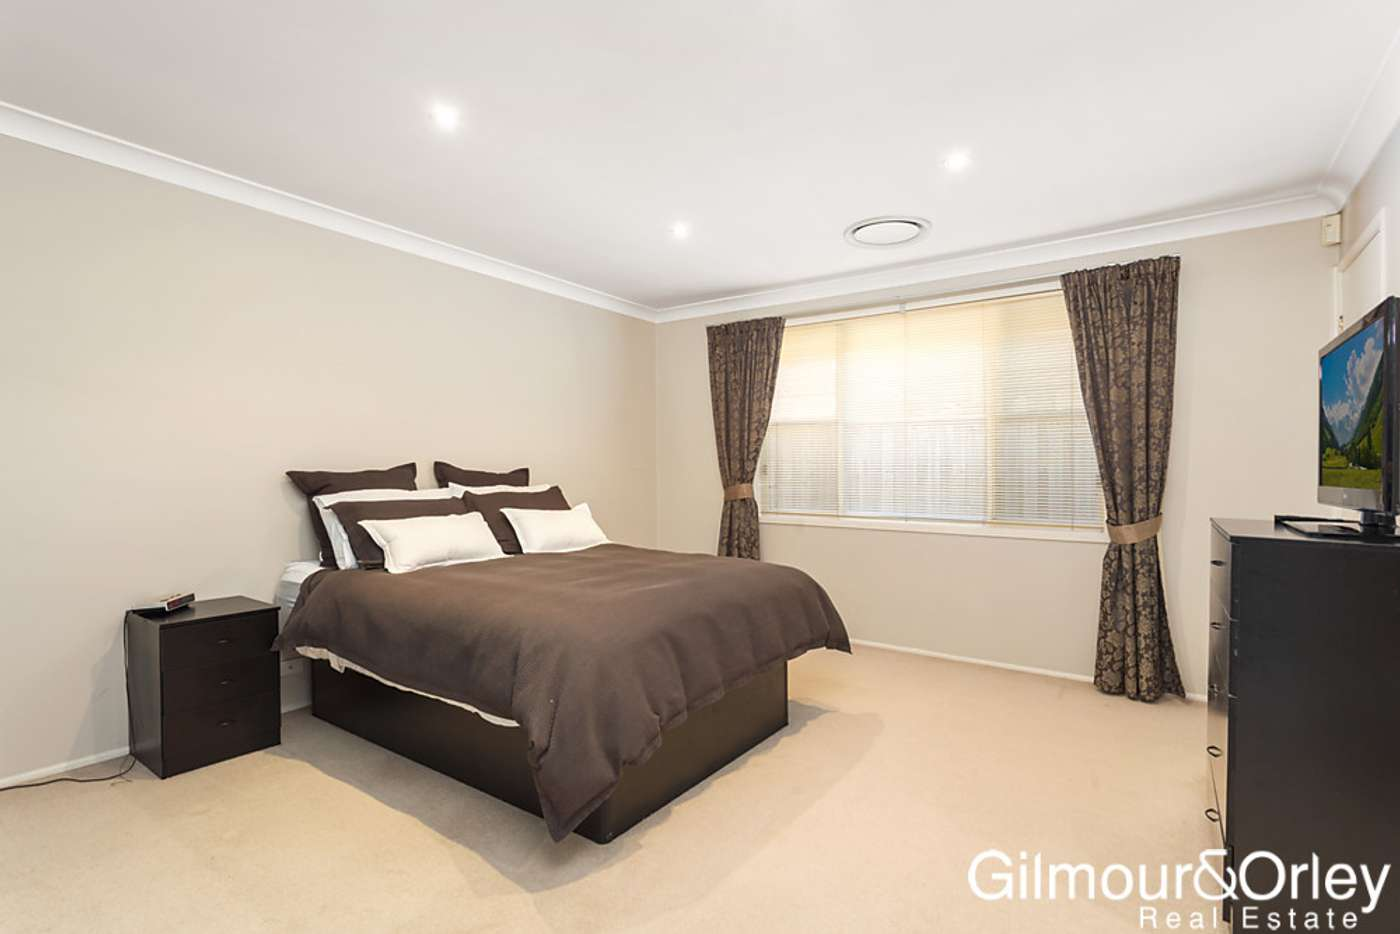 Seventh view of Homely house listing, 10 Lycett Avenue, Kellyville NSW 2155